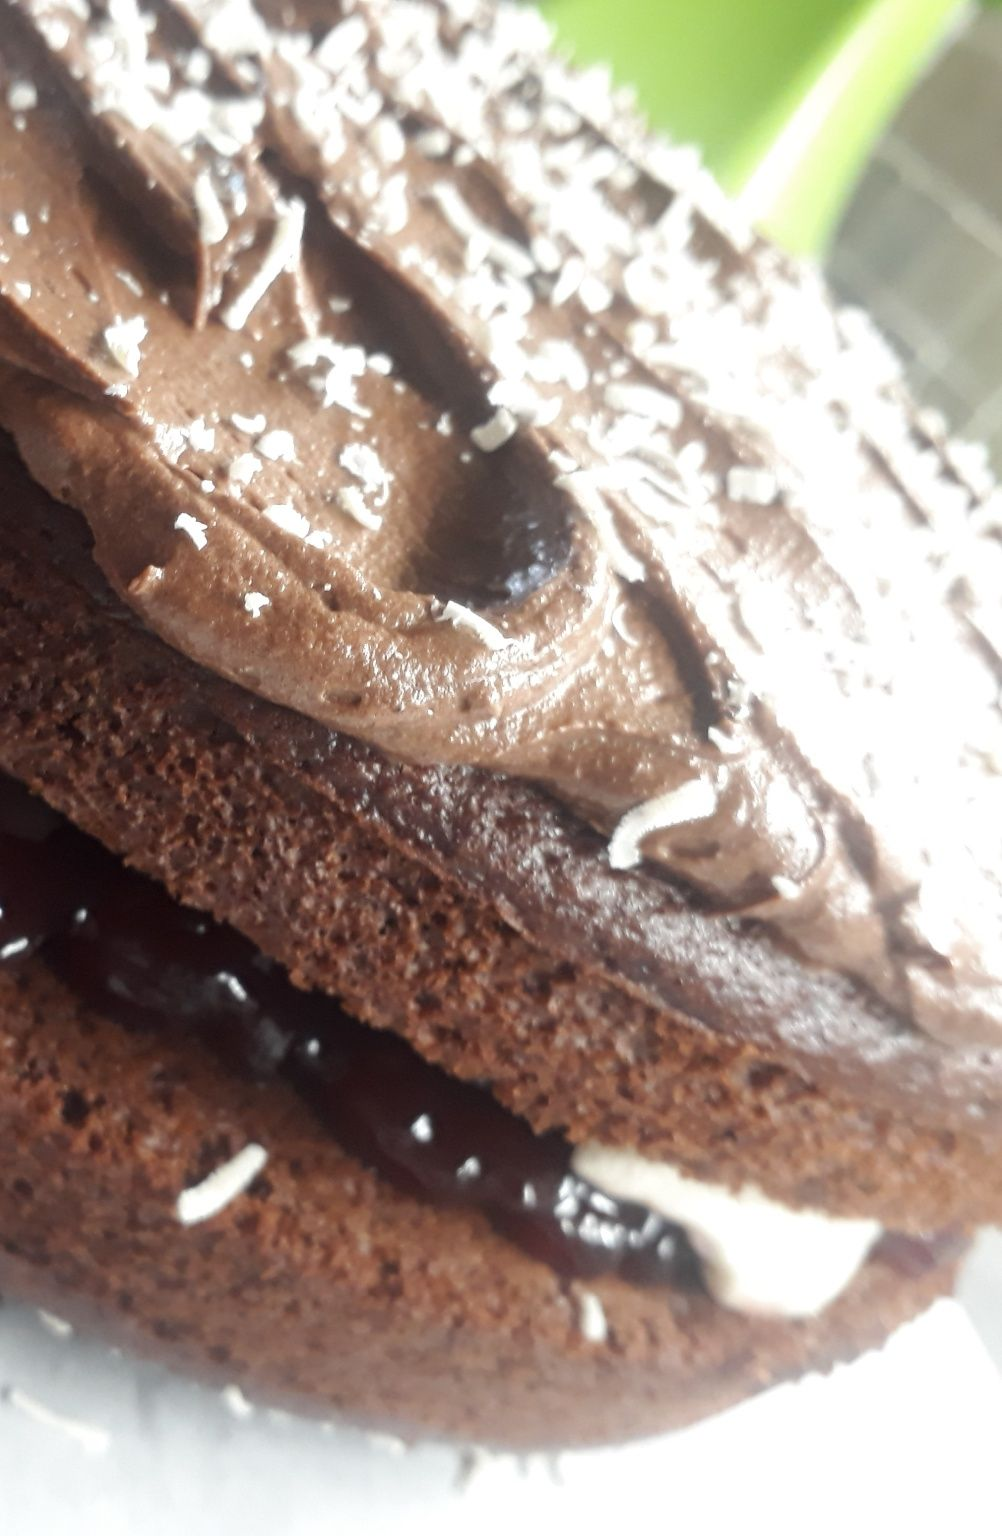 Chocolate Birthday Cake with Cream & Jam made without eggs